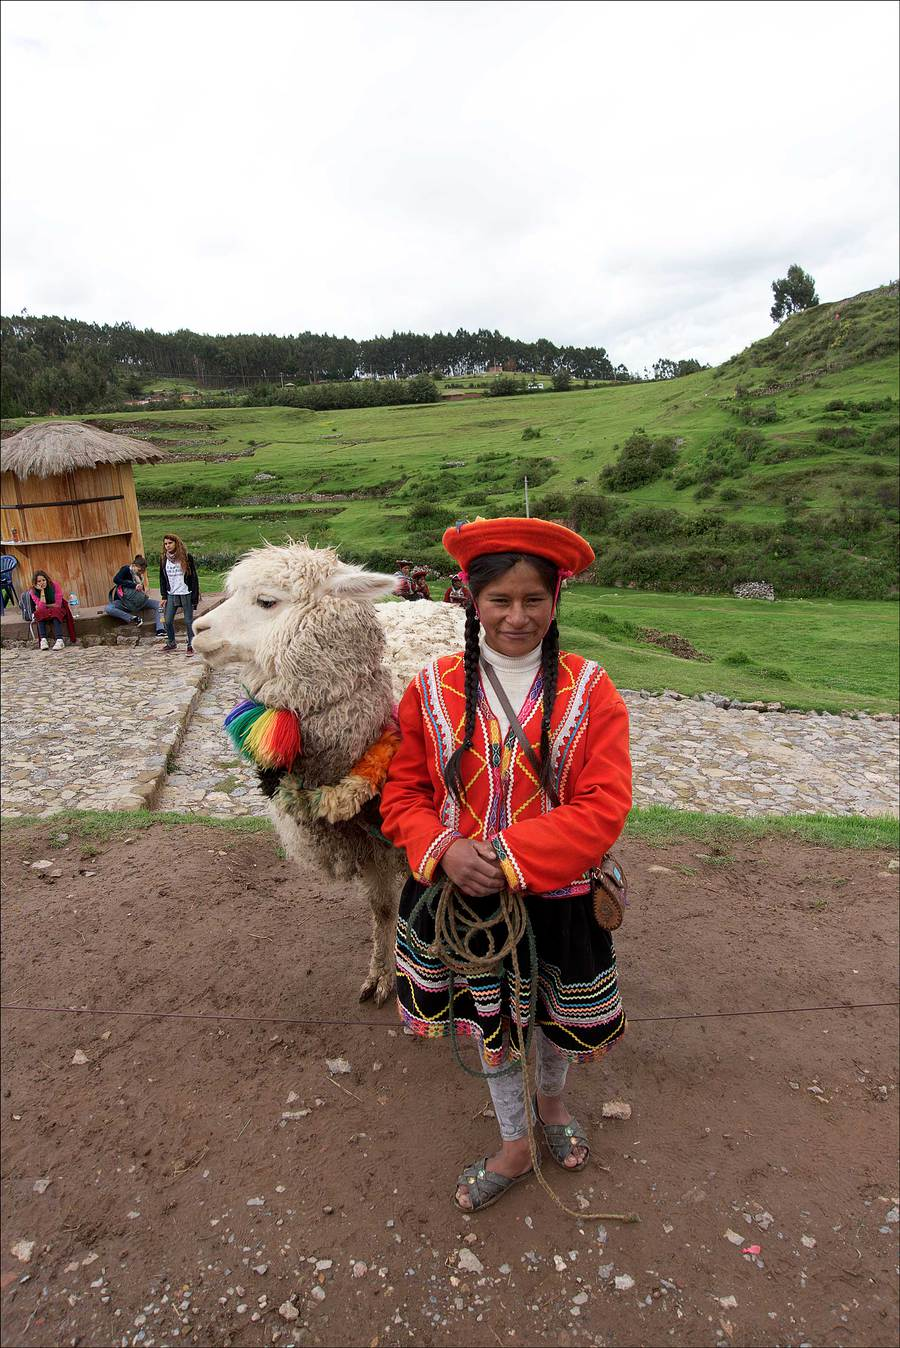 Girl with Alpaca. / Photography by Jerome Razoir / Uploaded 5th June 2015 @ 08:04 PM